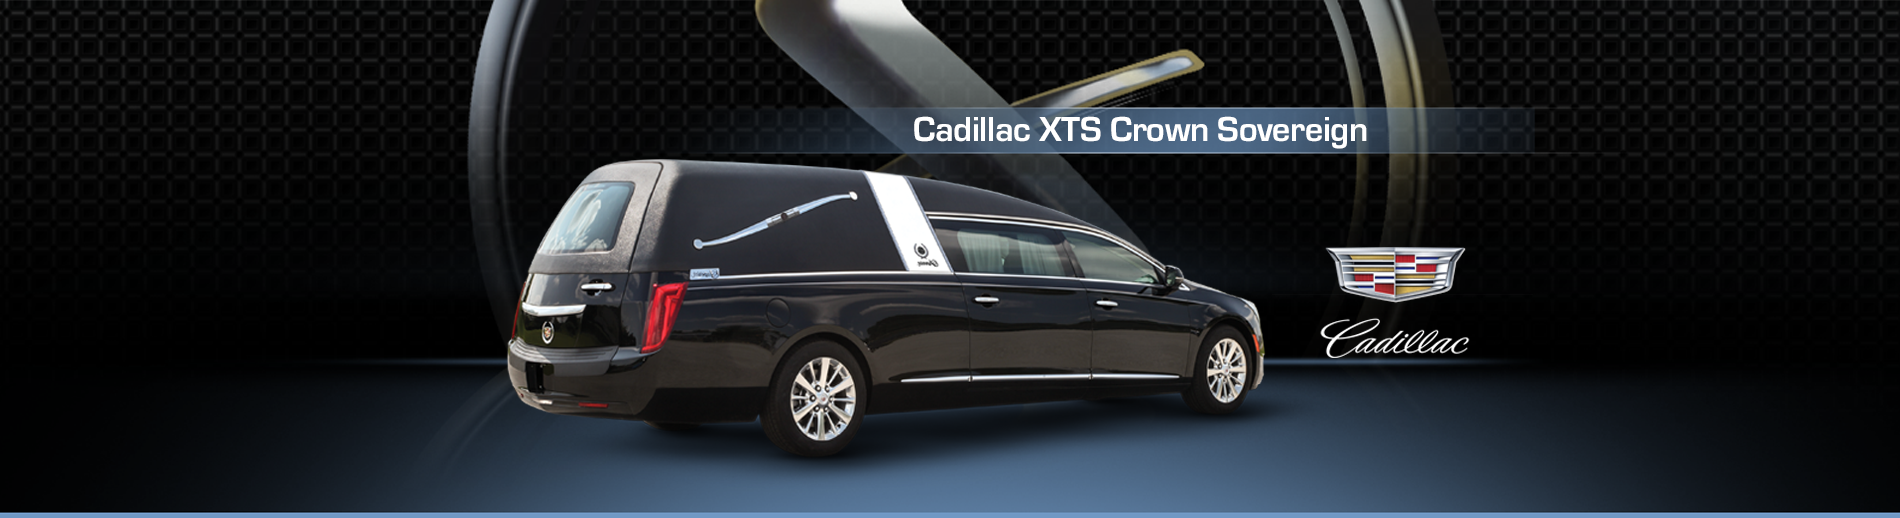 2017 Crown Sovereign Details Page